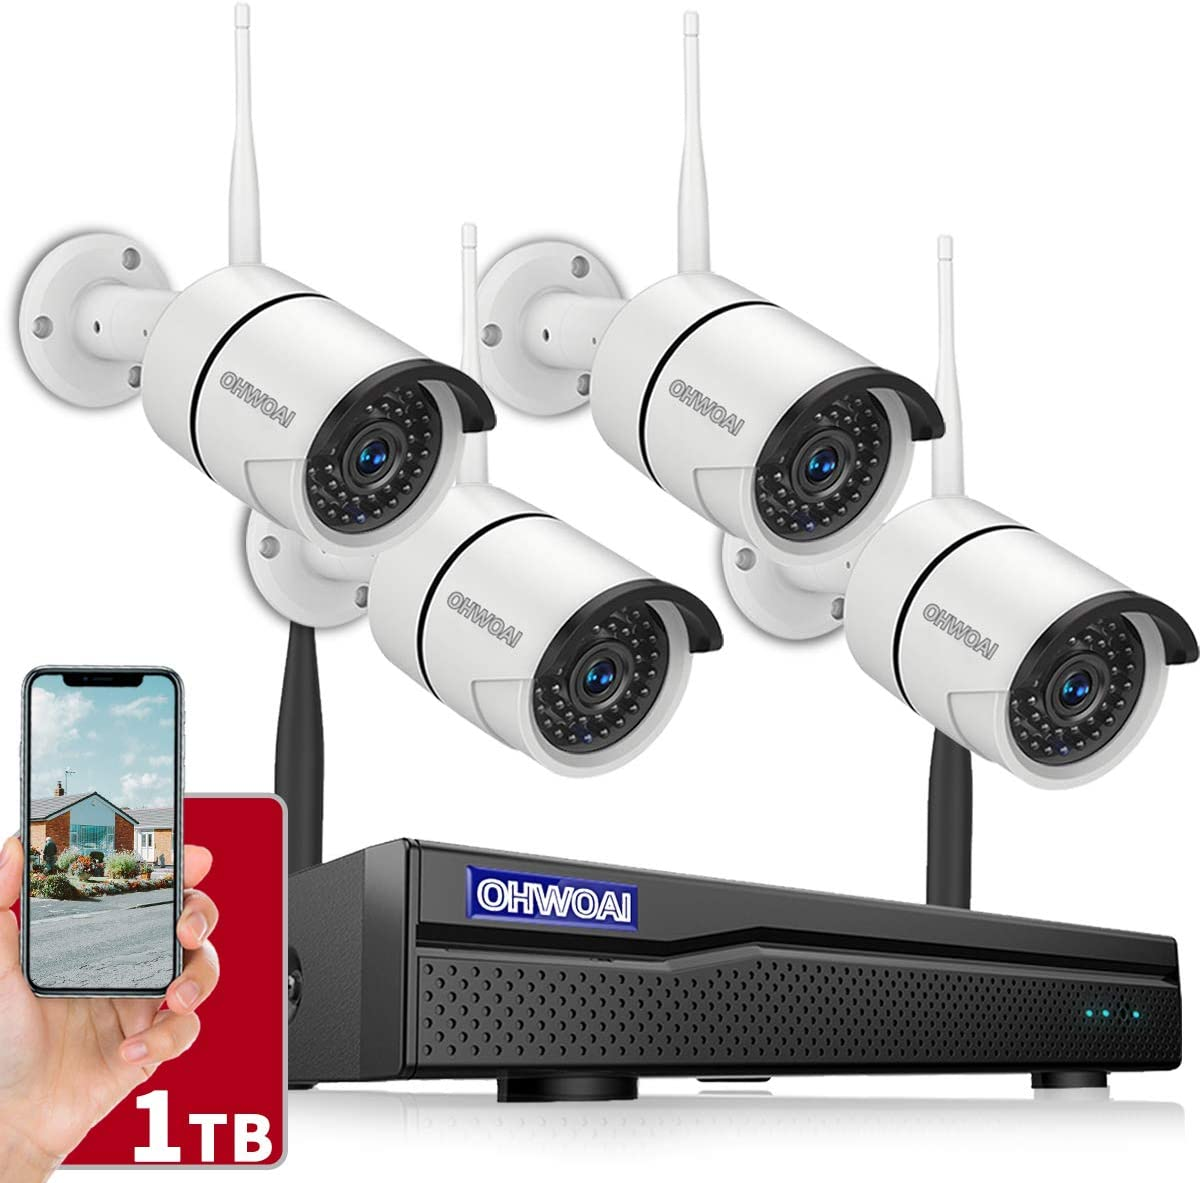 Amazon Com 8ch Expandable Audio Security Camera System Wireless Outdoor 8 Channel 1080p Nvr With 1tb Hard Drive 4pcs 1080p Cctv Cameras For Home Ohwoai Surveillance Video Security System Outdoor Ip Cameras Home Improvement